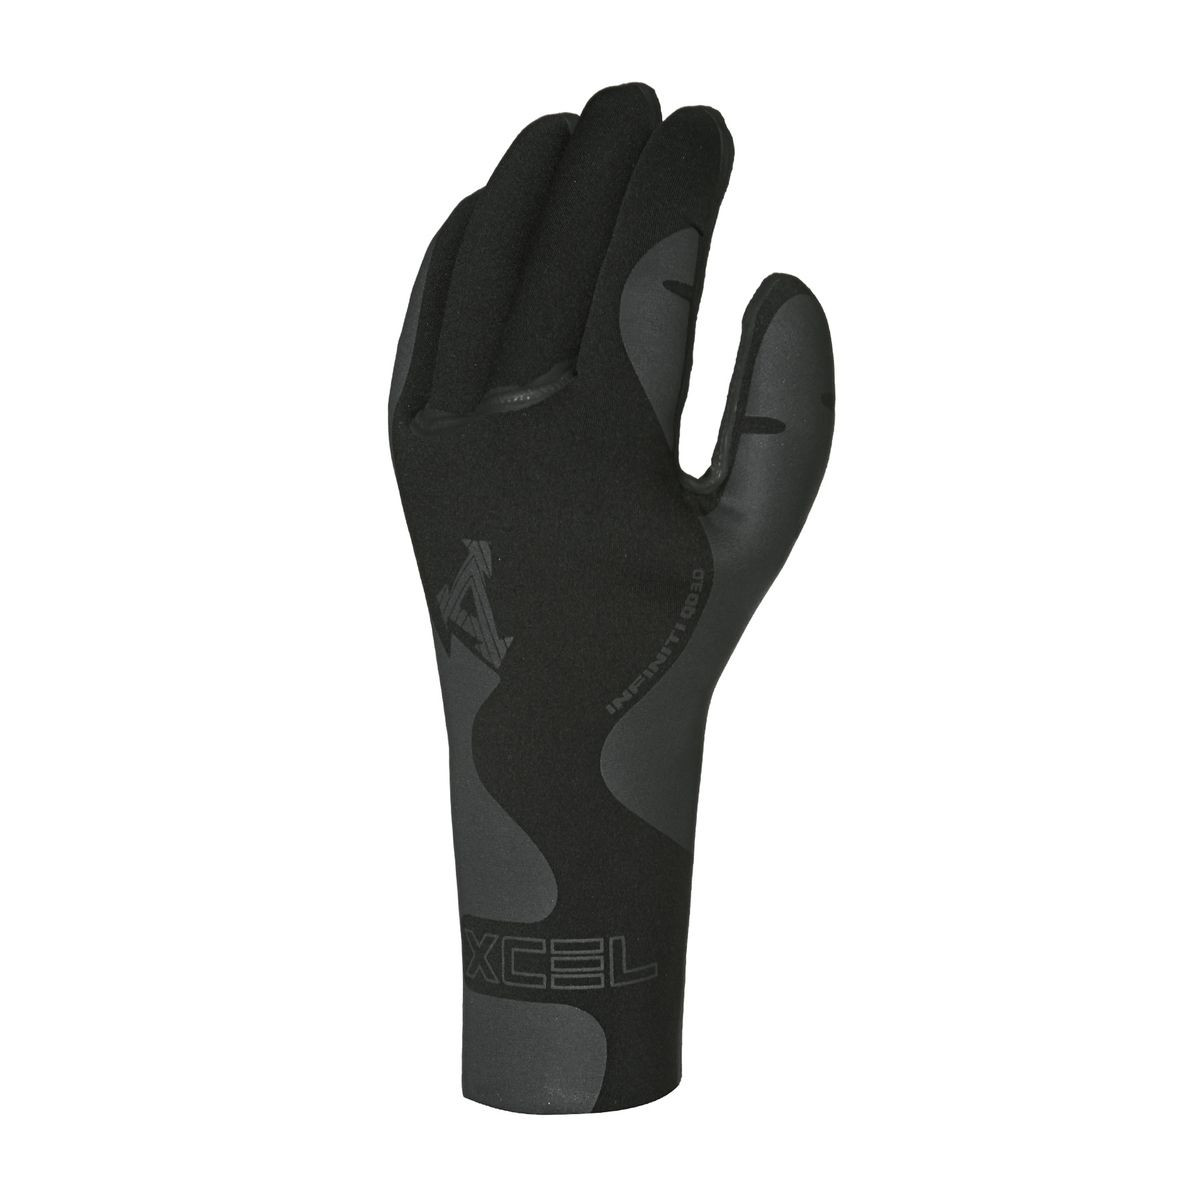 Xcel Infiniti 3mm 5-finger Wetsuit Gloves - Black